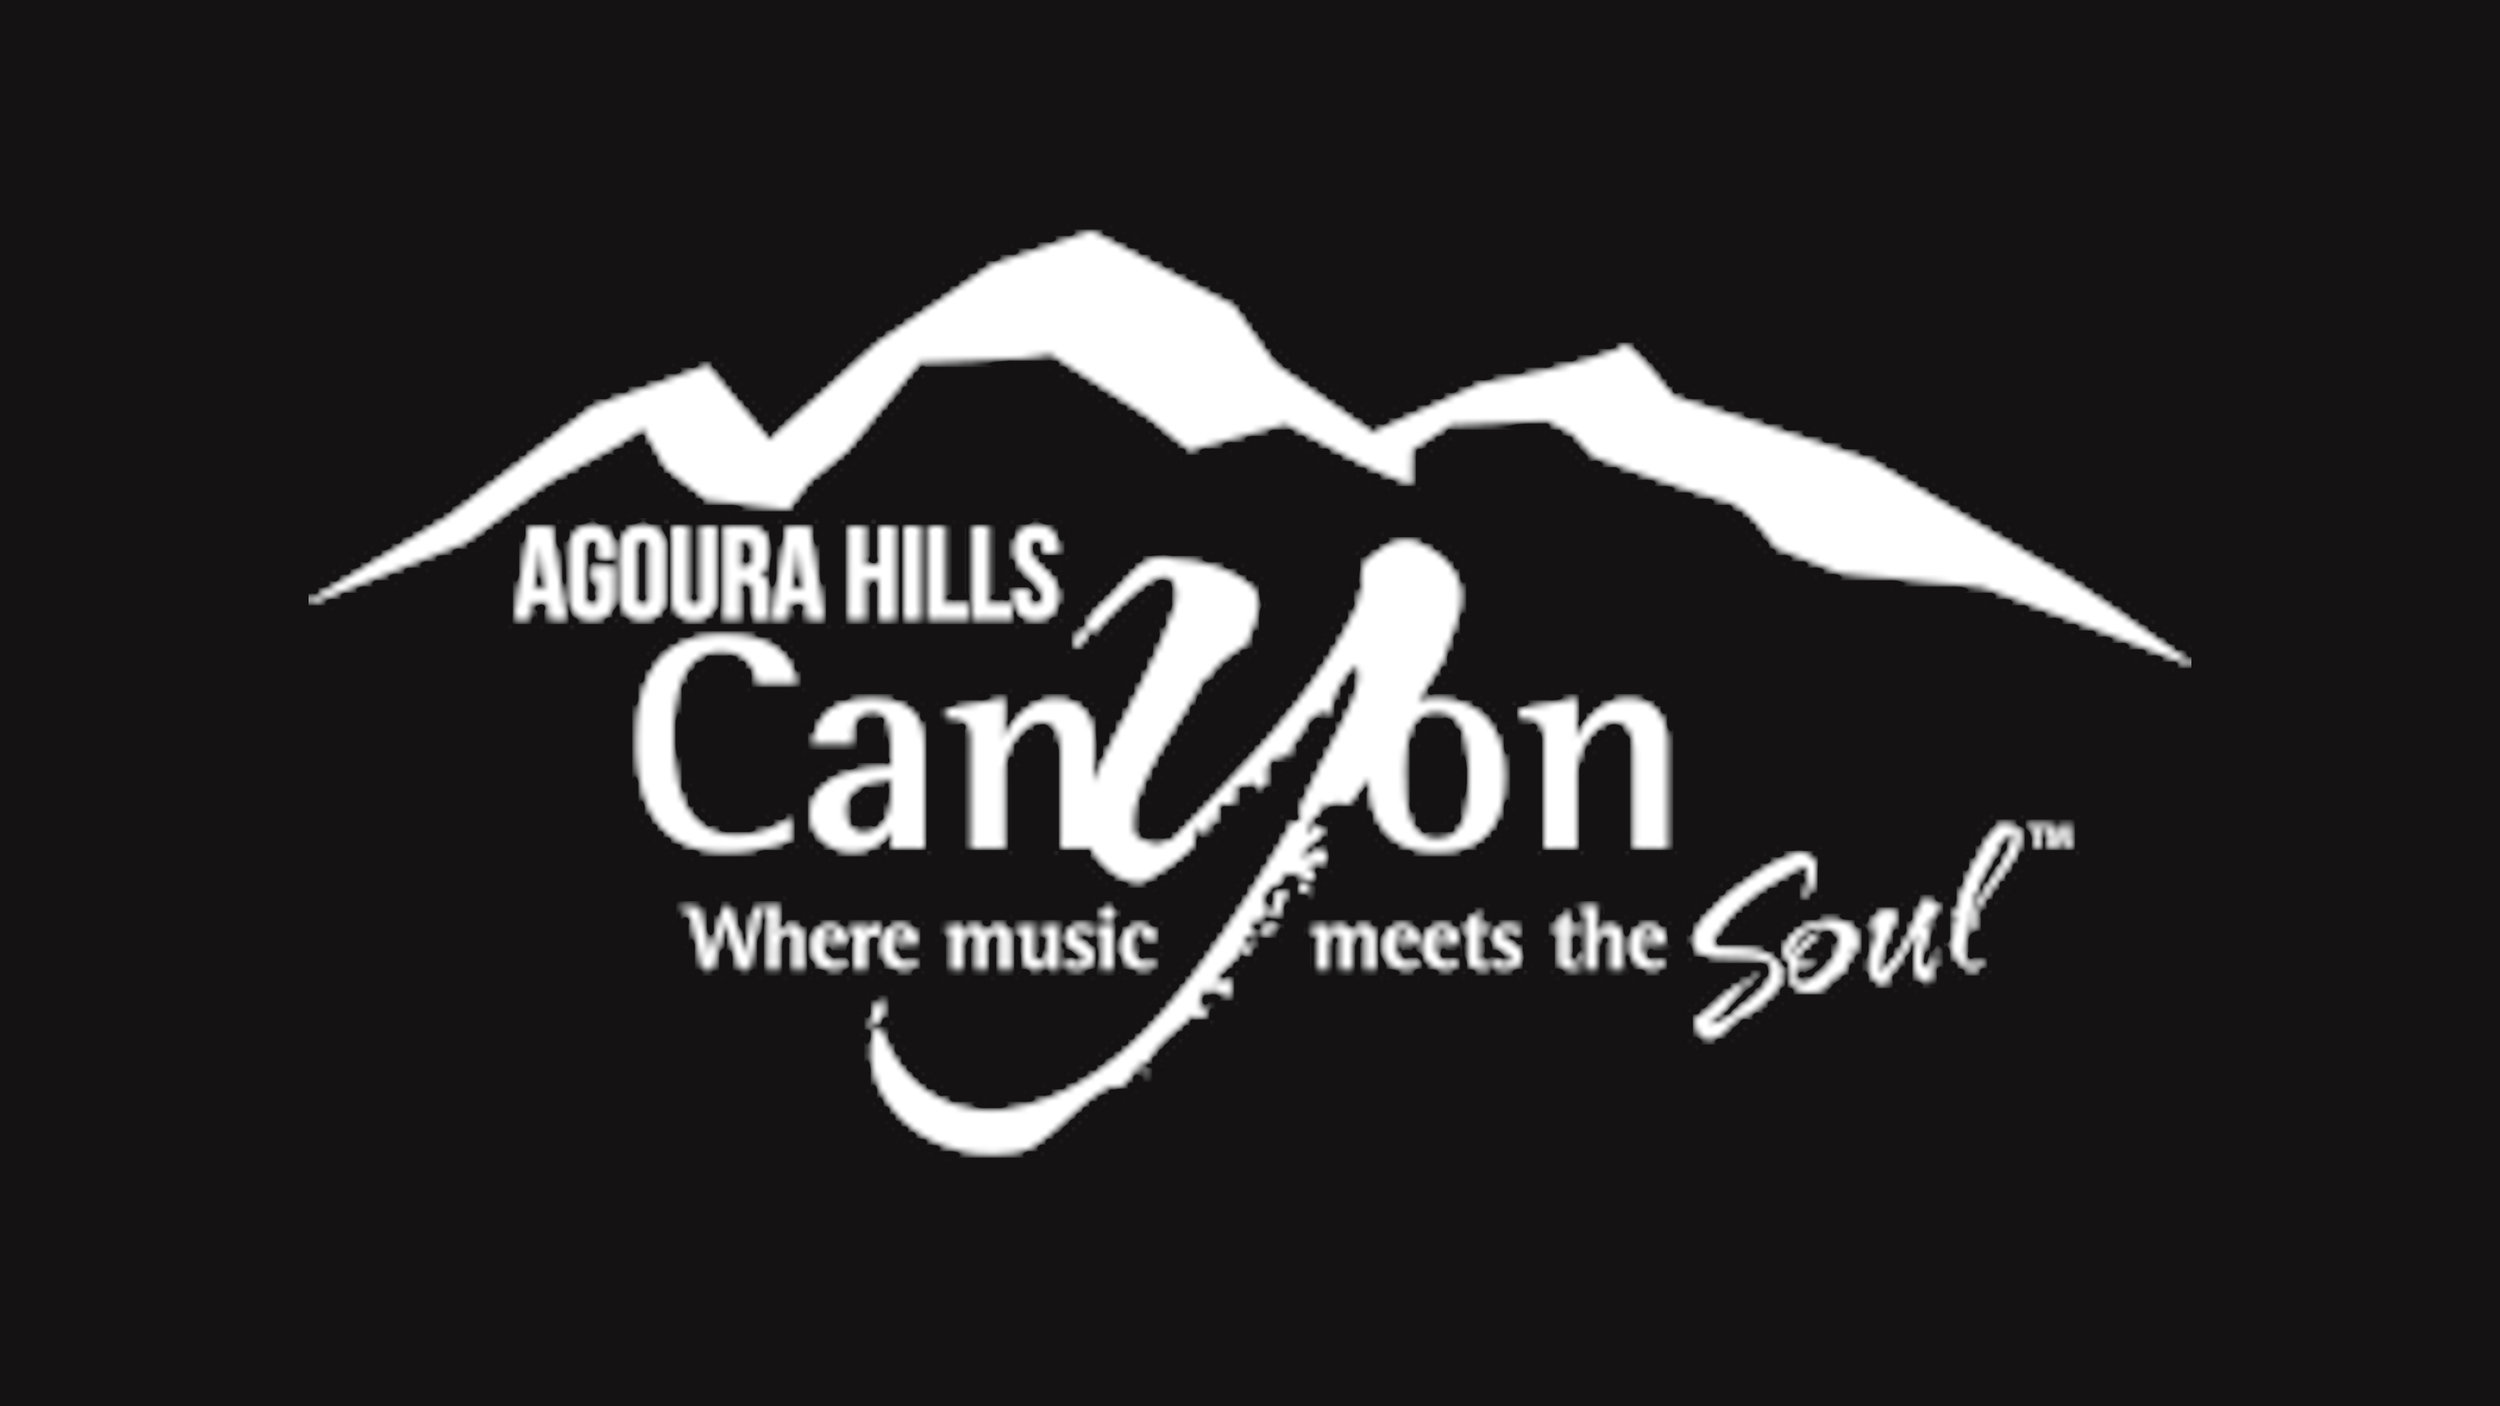 CANYON LOGO 2.jpg